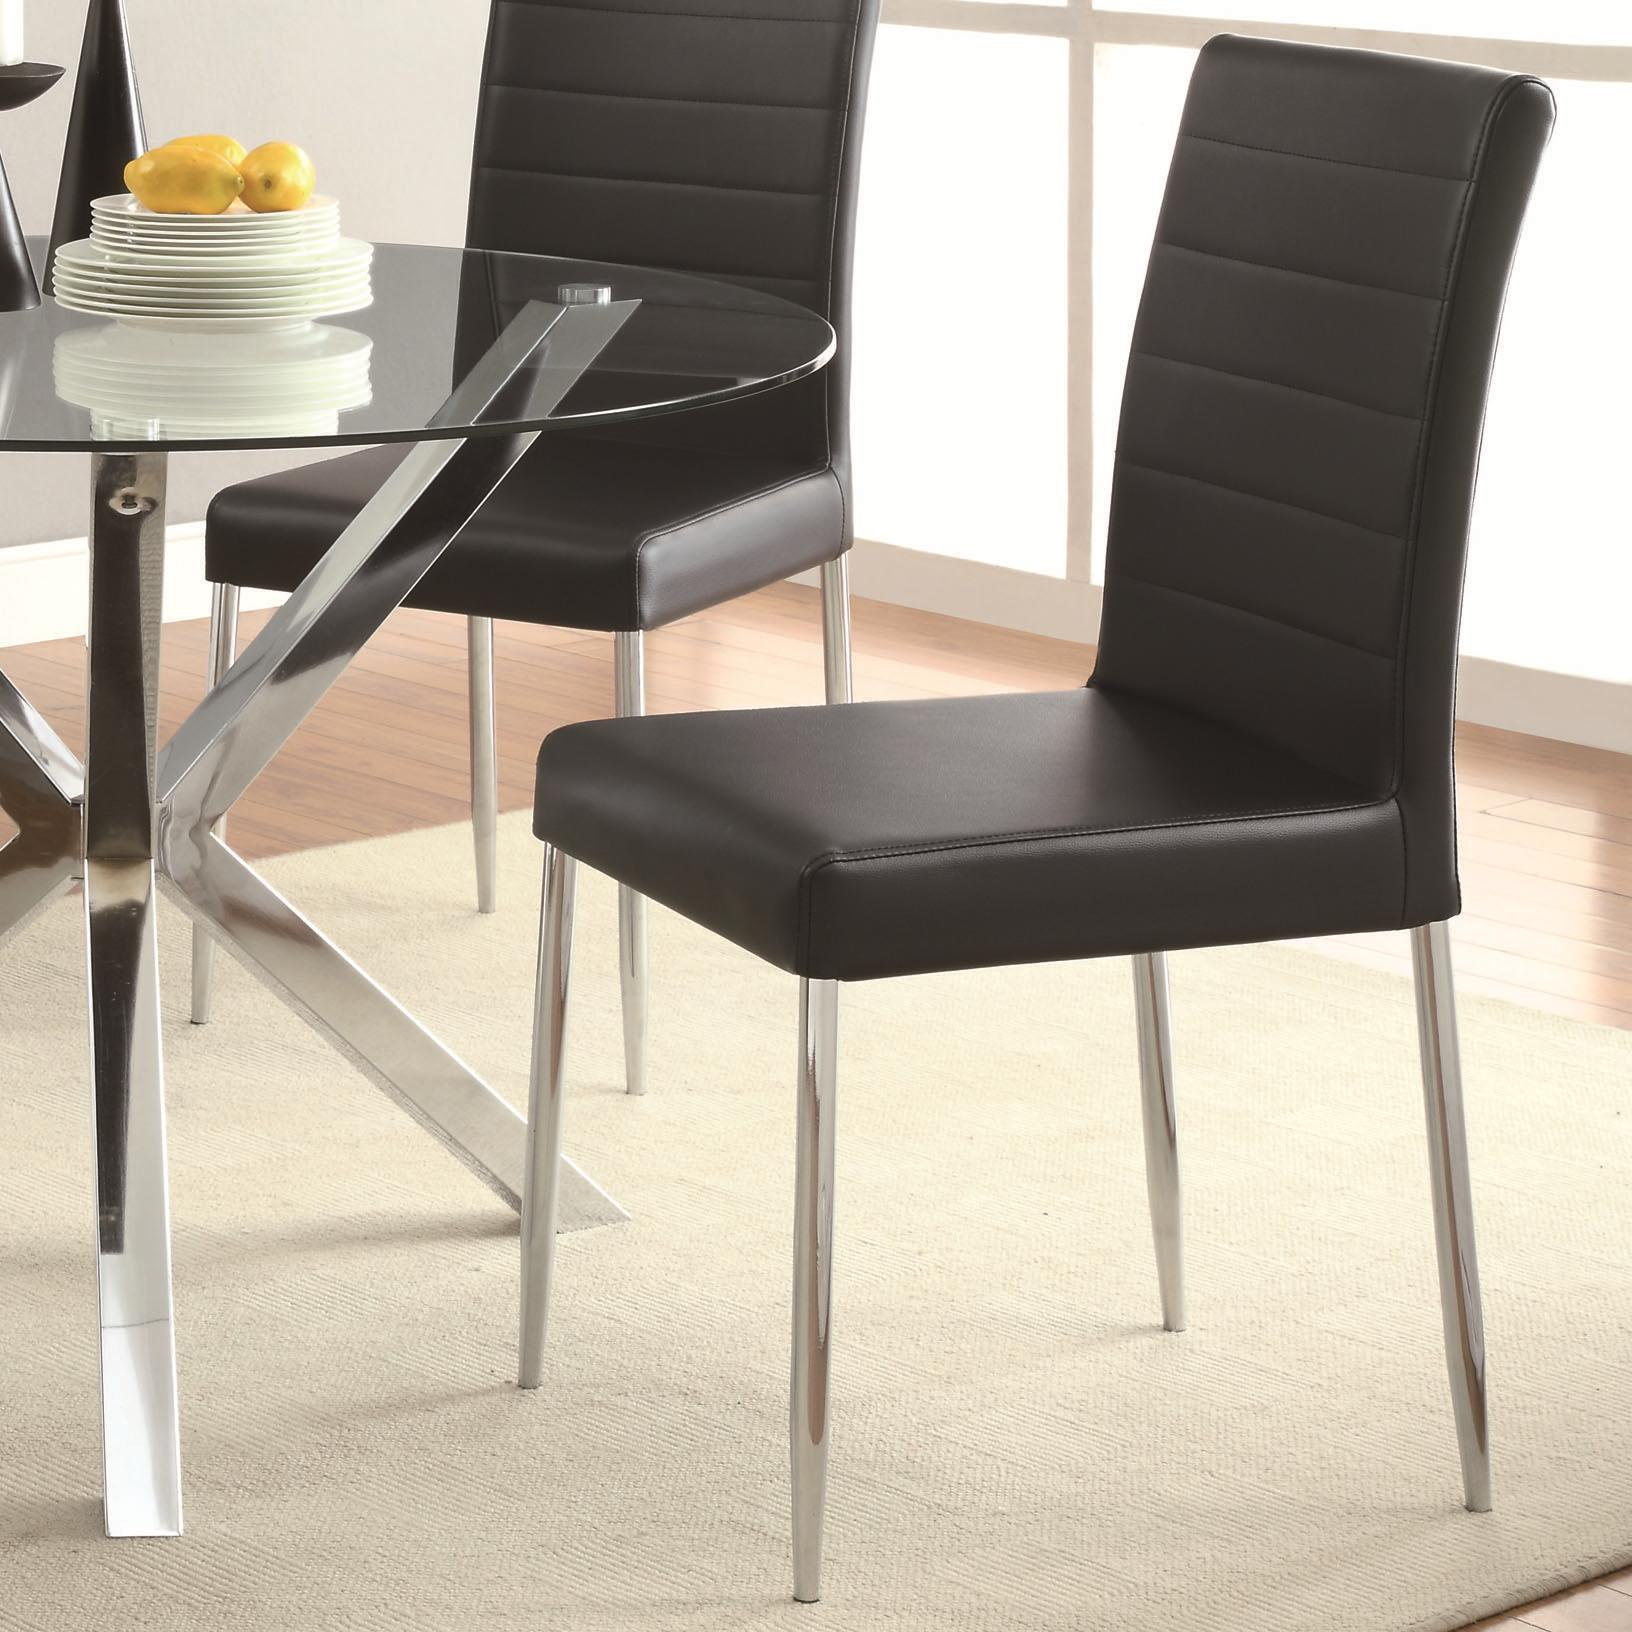 Vance contemporary dining chair w black vinyl cushion bana home